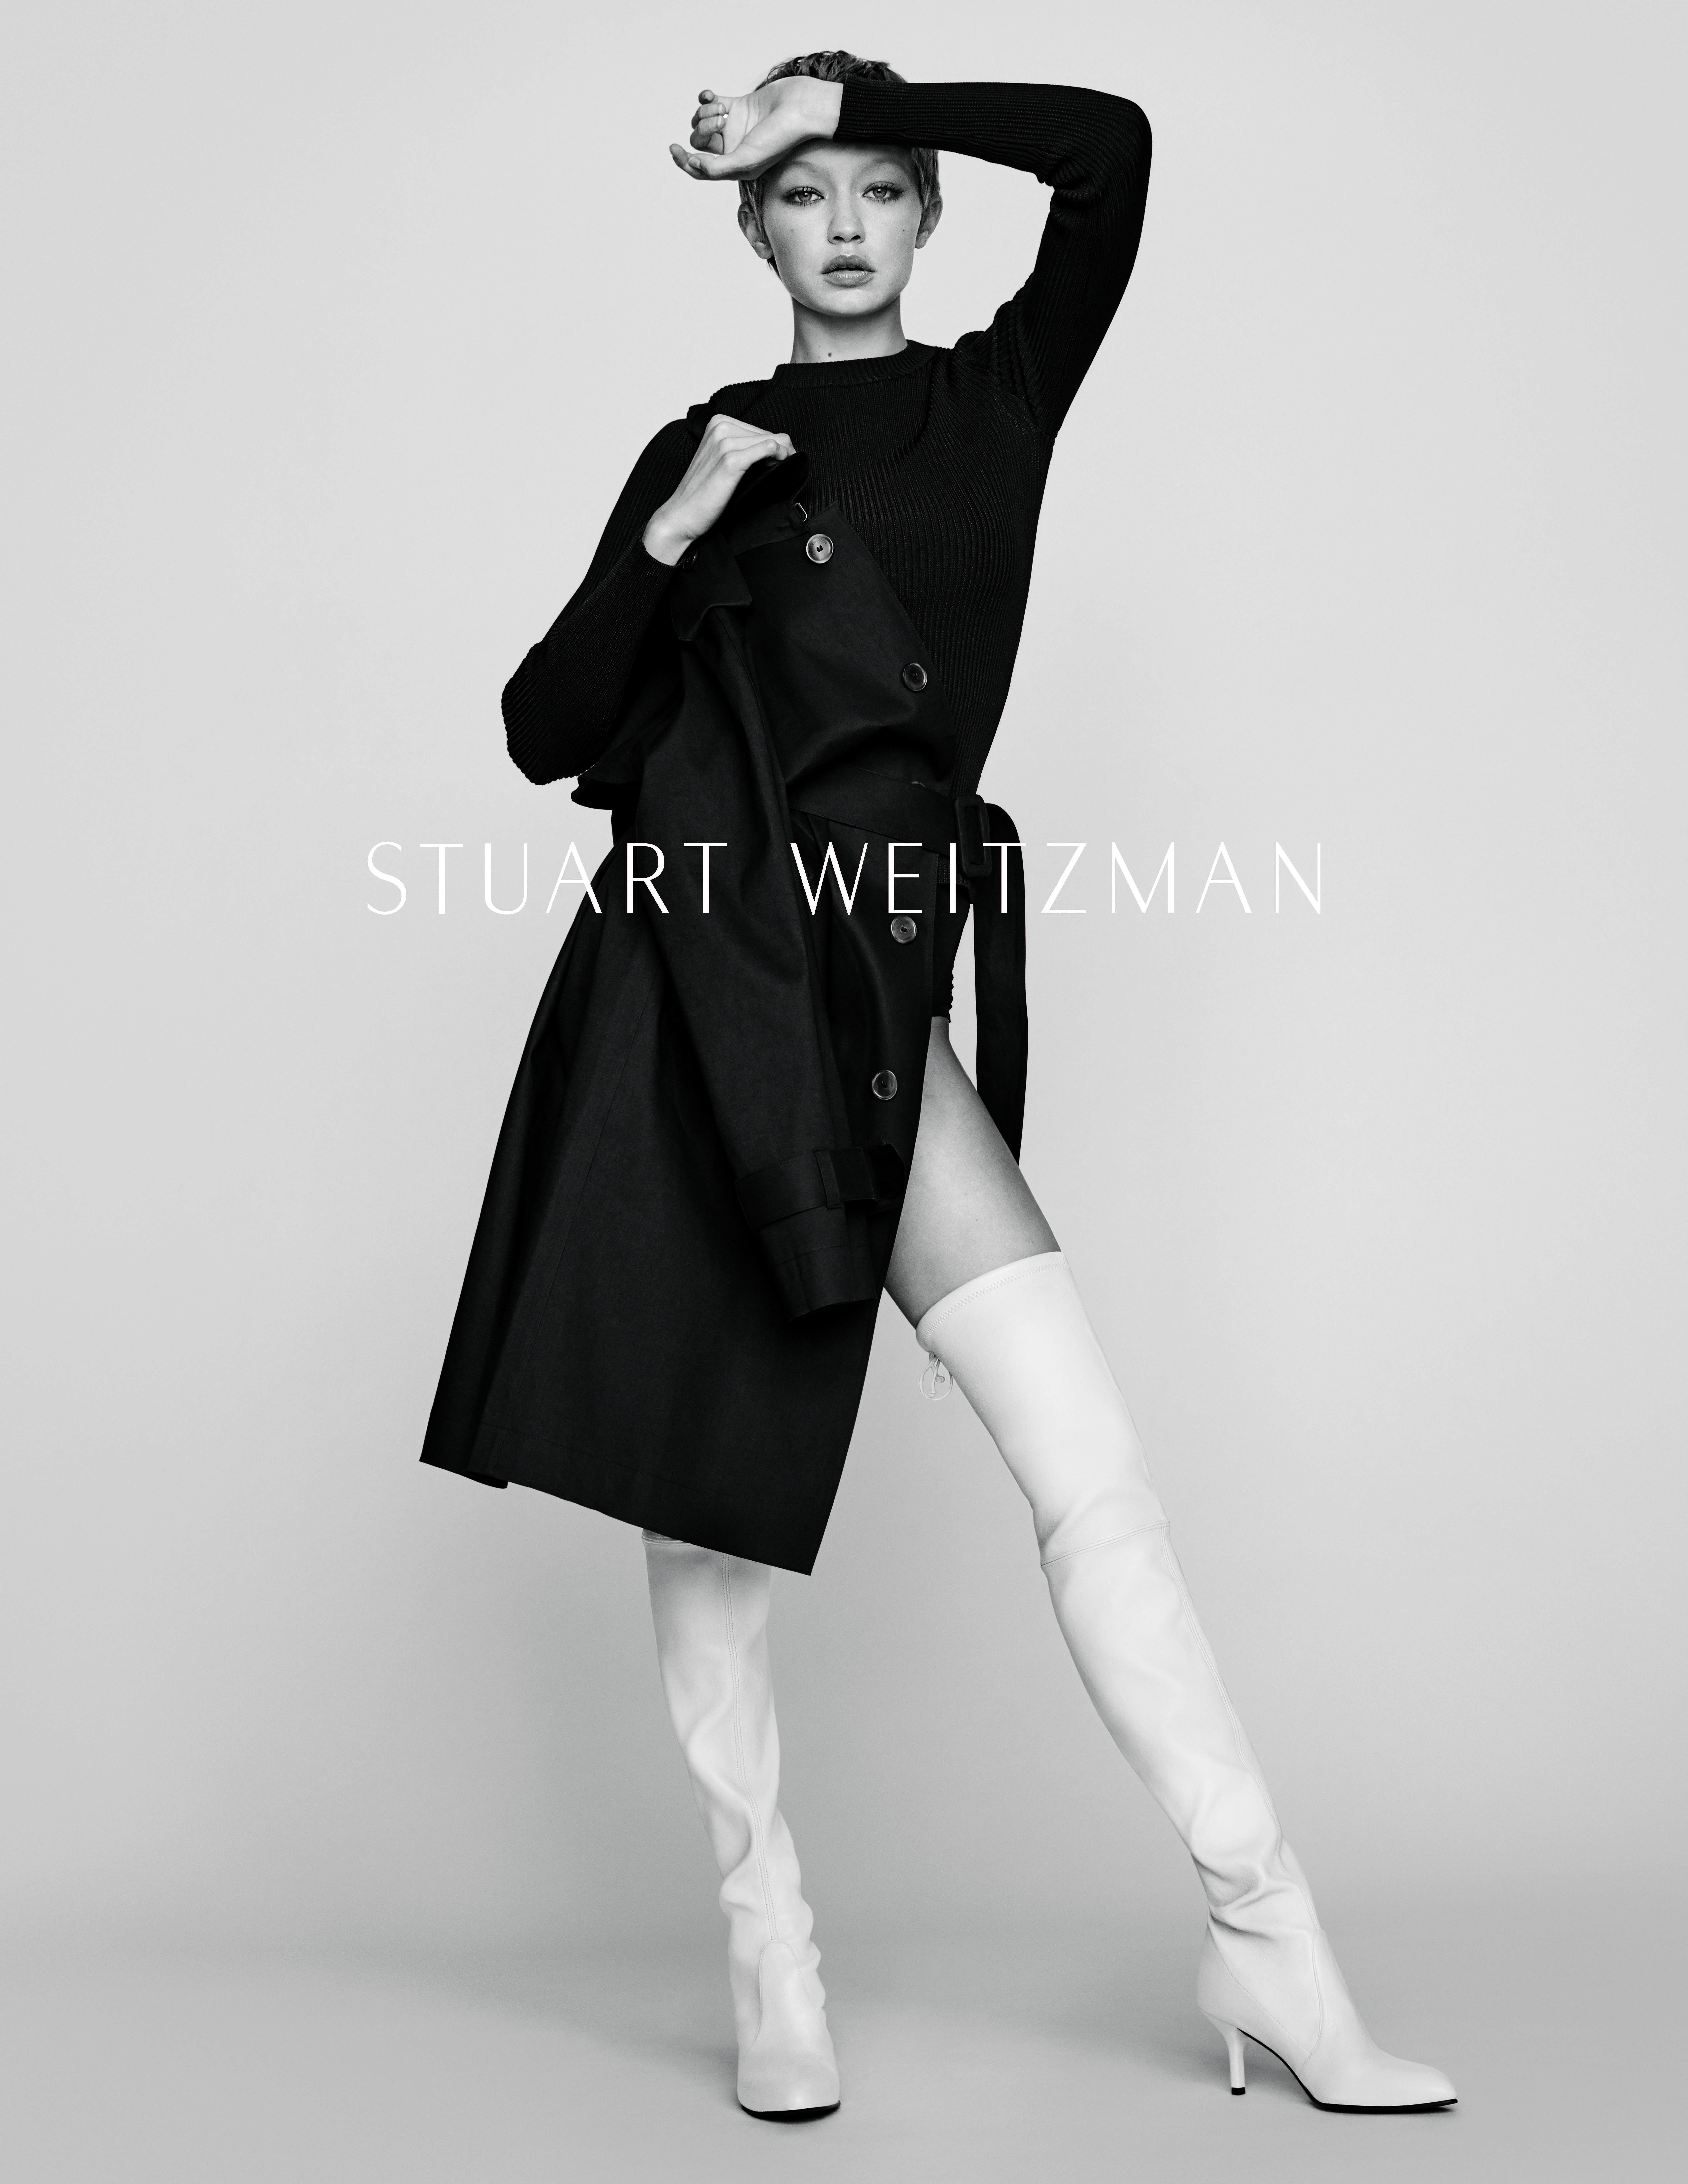 51b4e6d1e3d Introducing the Fall Winter 2017 Collection - Gigi Hadid in the Tiemodel  Over the Knee Boot